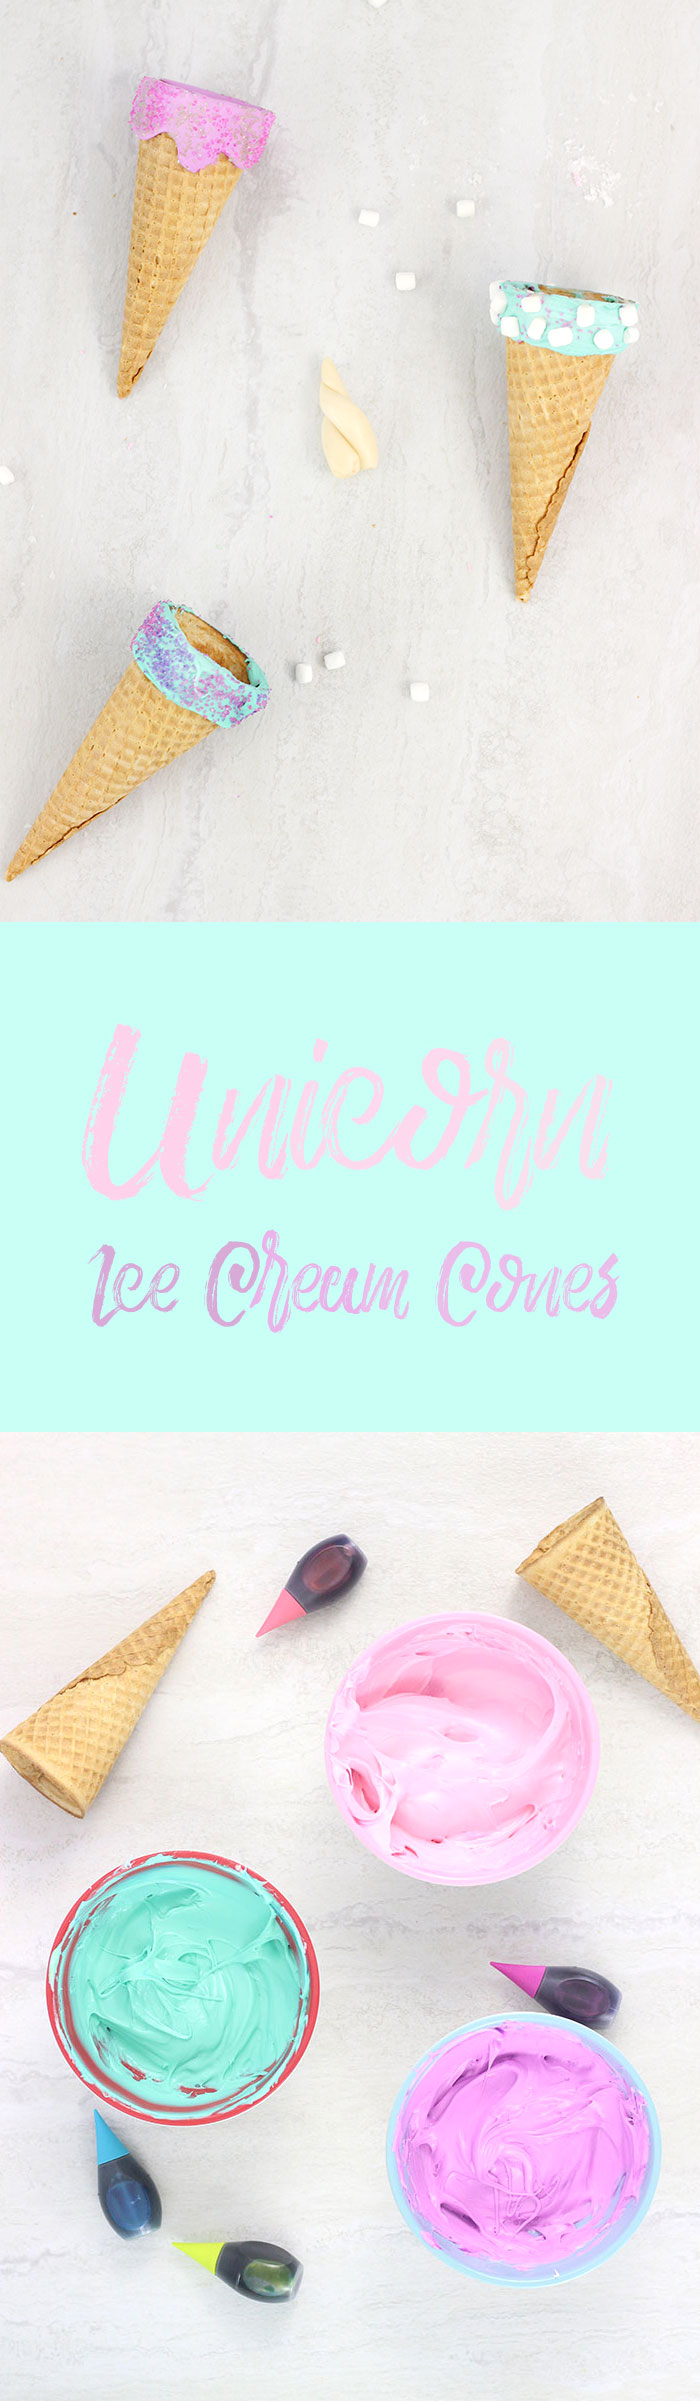 Unicorn Ice Cream Cones. Make magical ice cream cones the easy way with frosting.